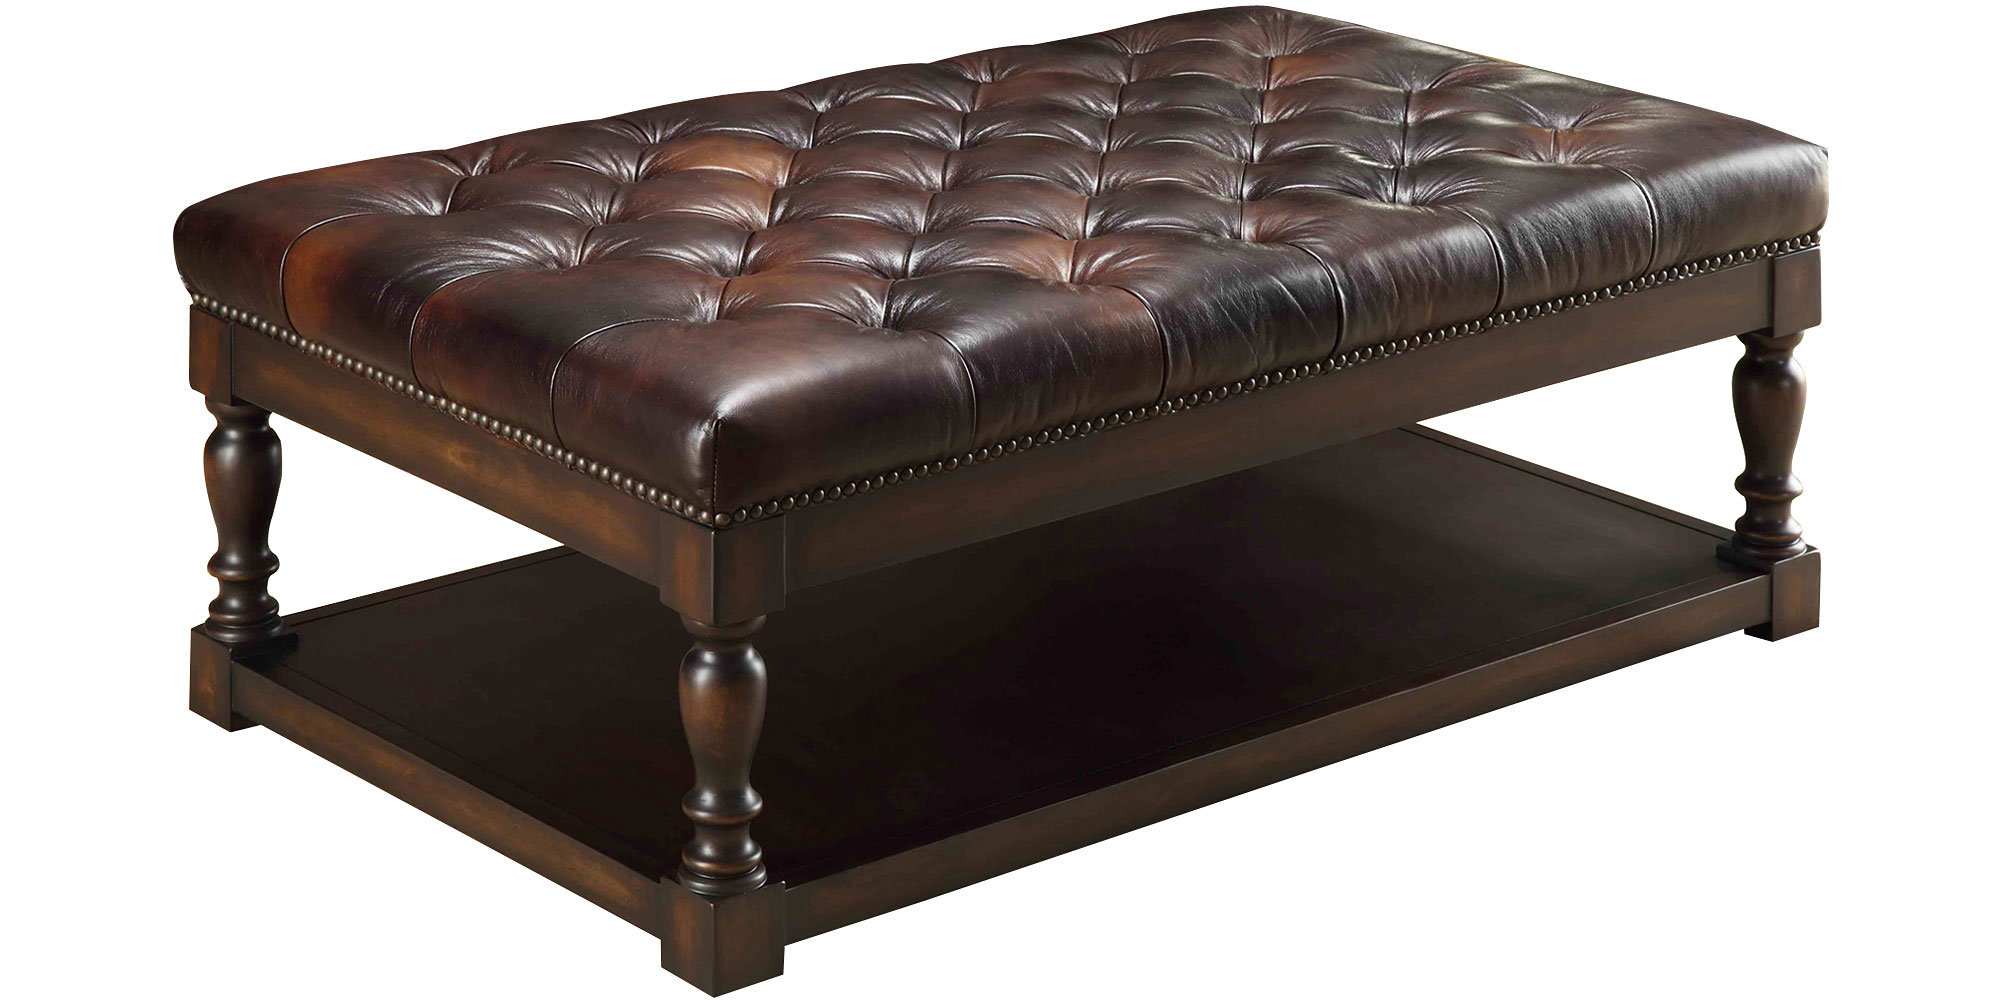 Leather Ottomans & Coffee Table Storage Ottomans